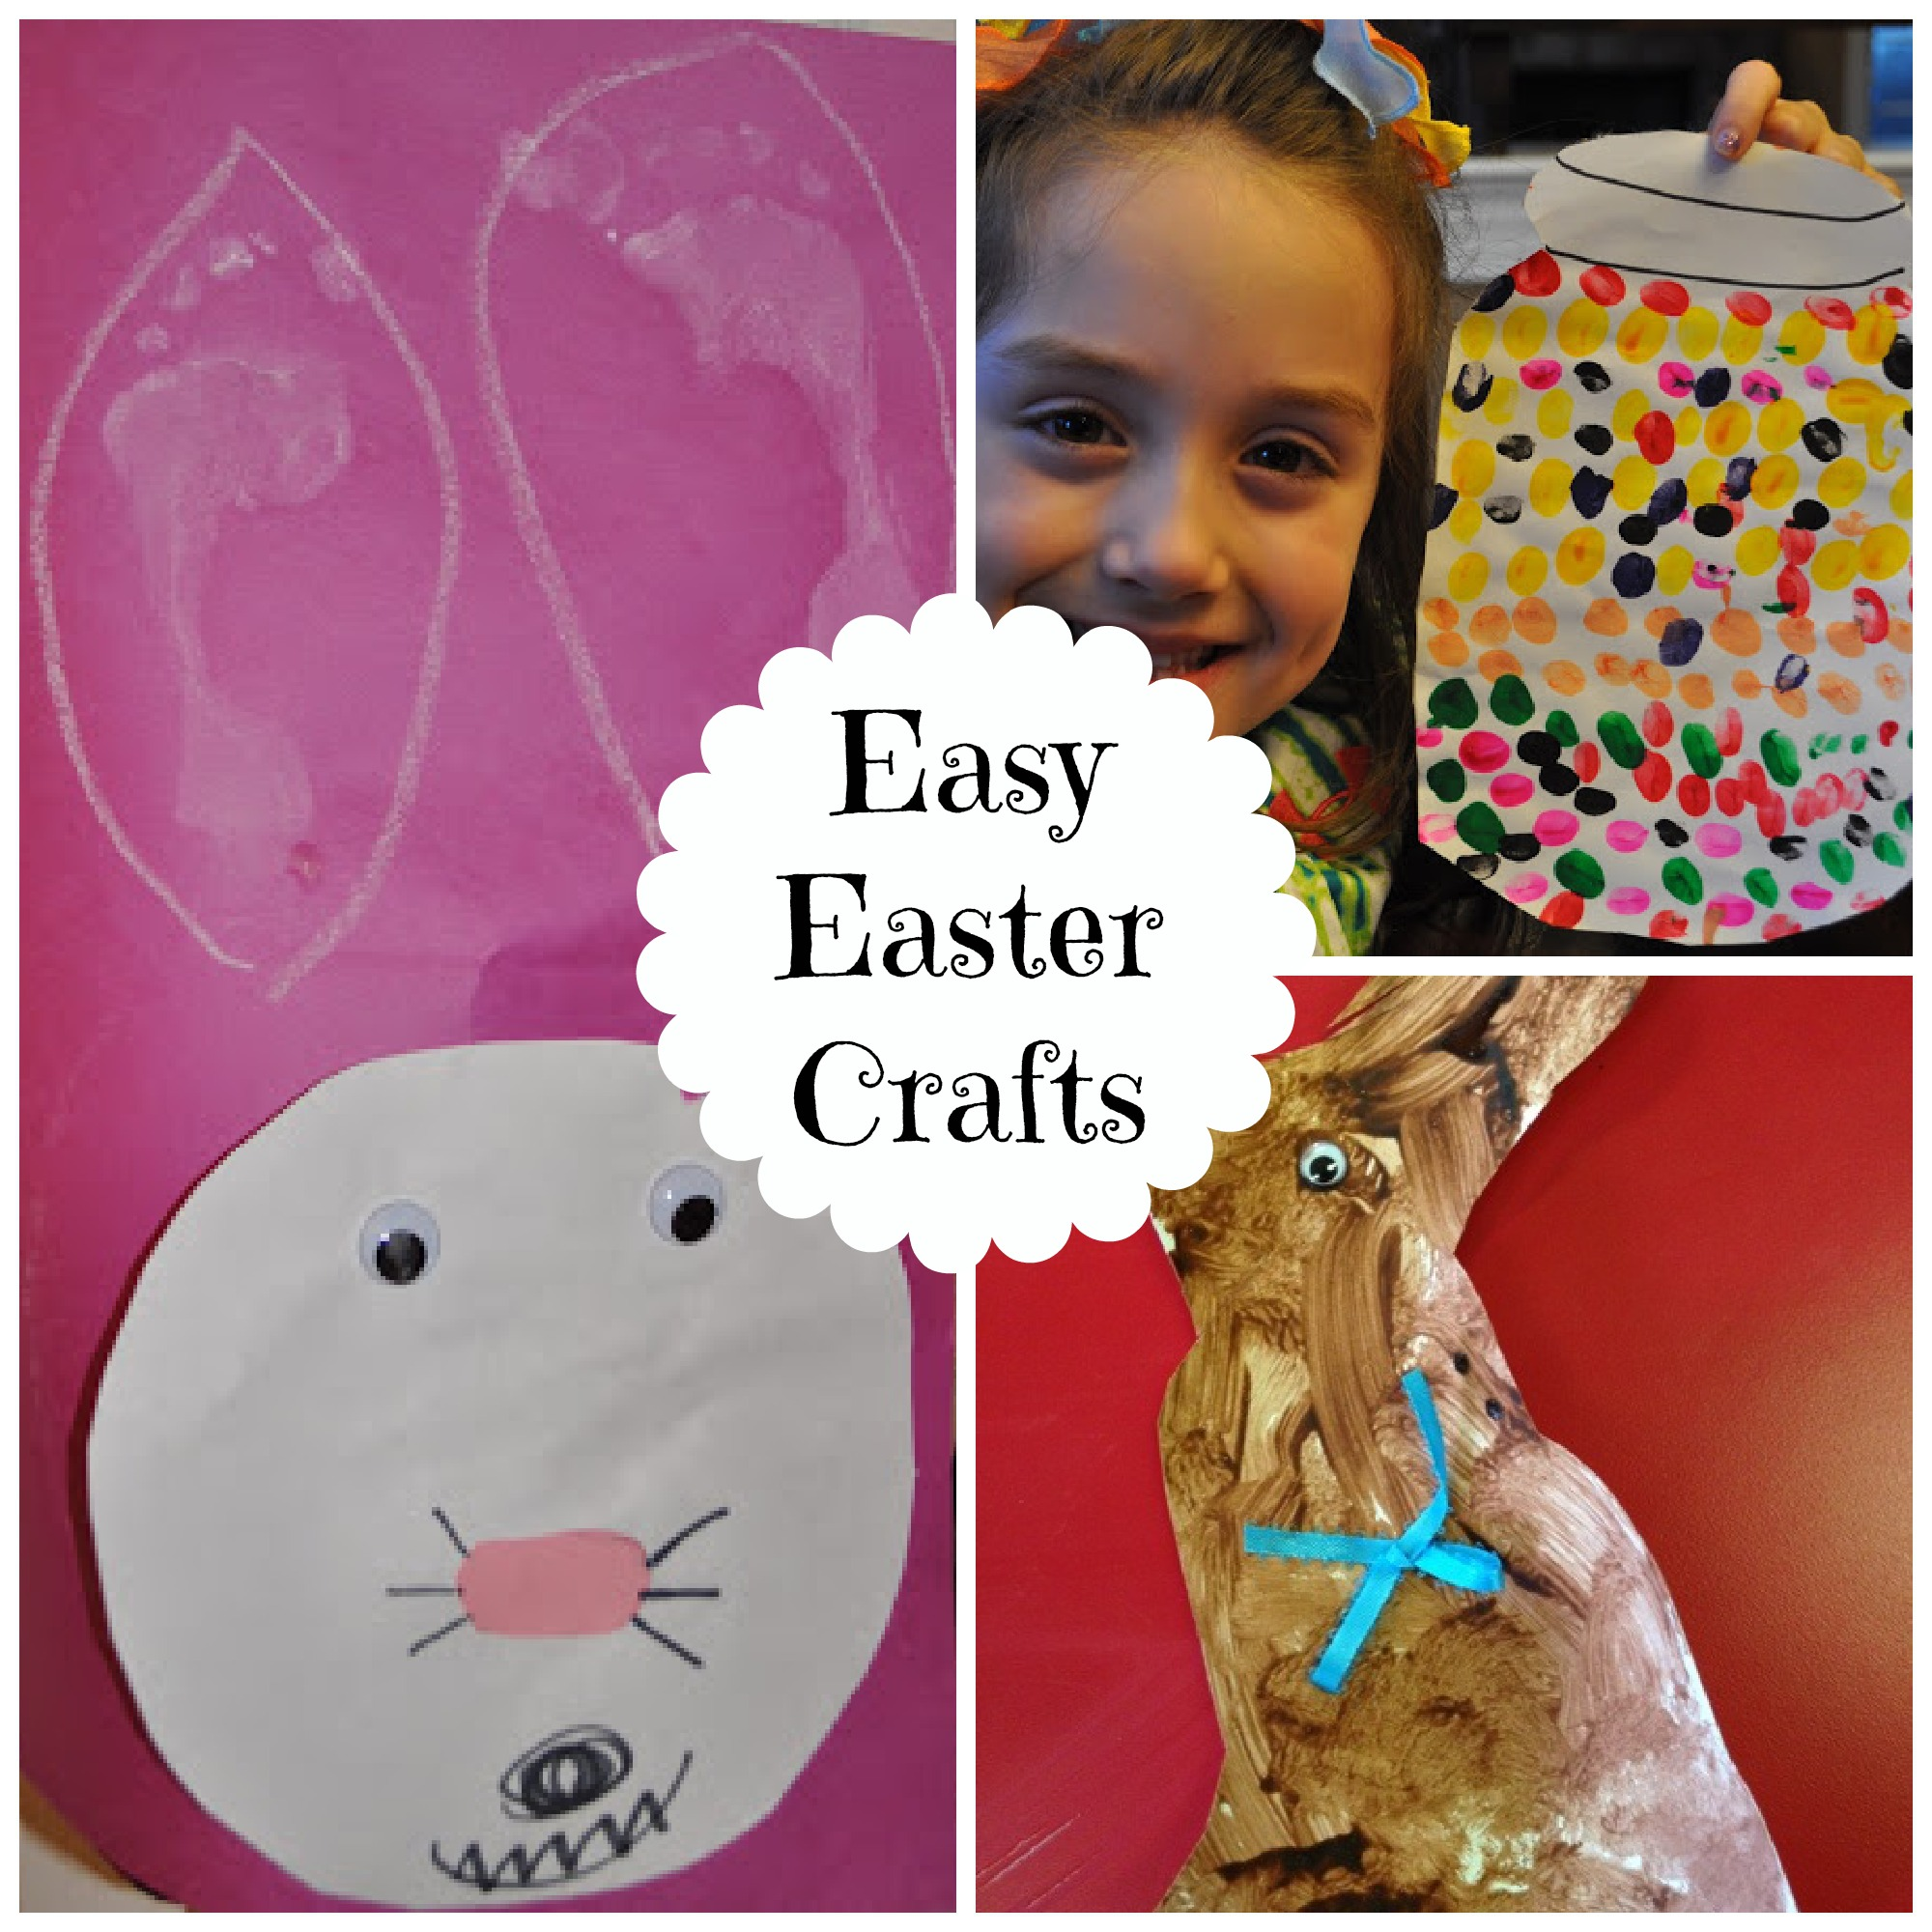 3 Easy Easter Crafts For Preschoolers